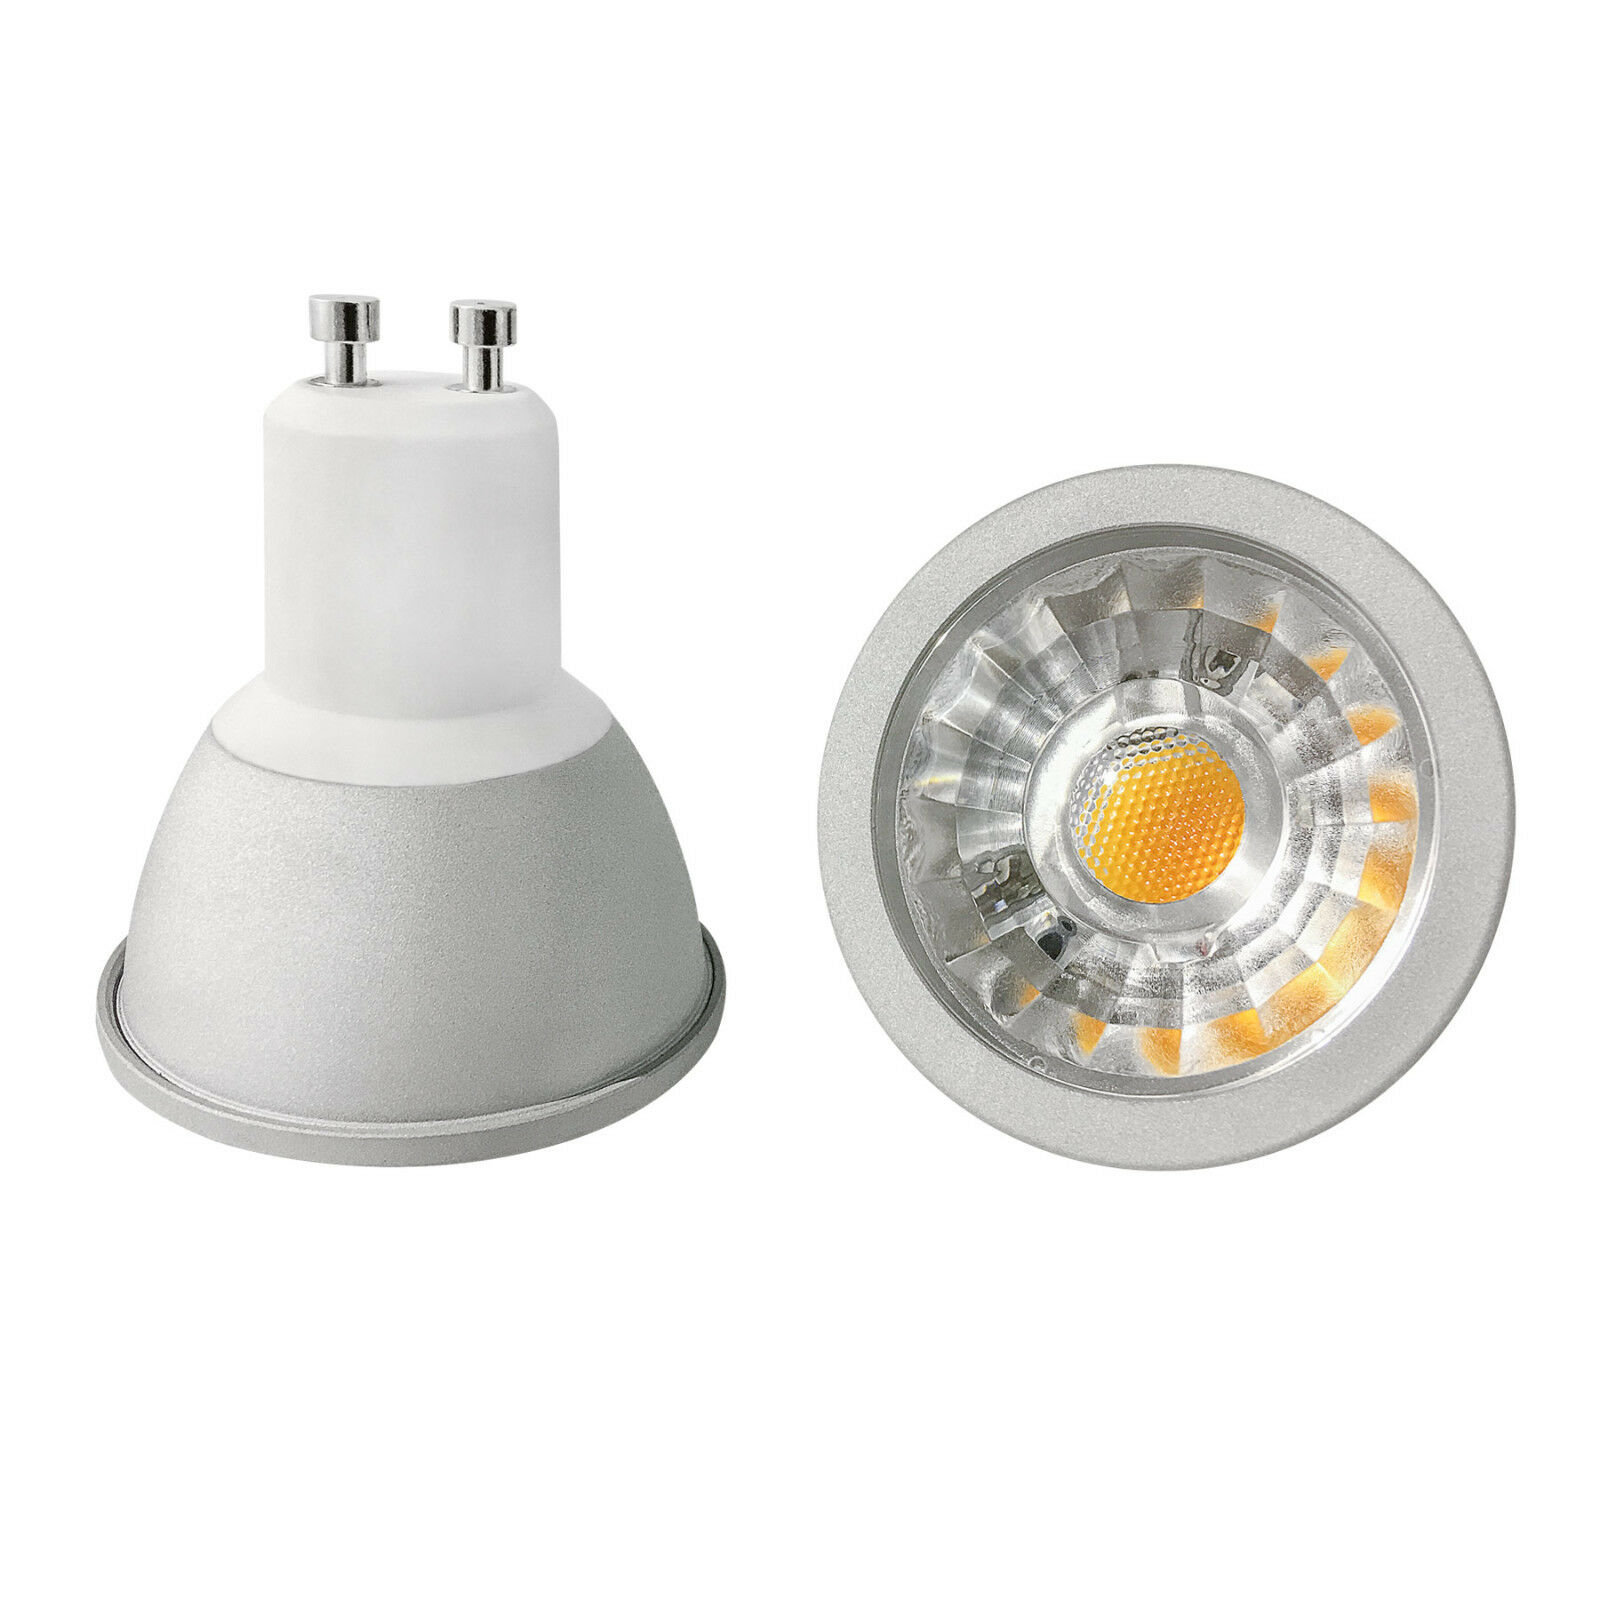 10x LAMPADINA LED SPOT LED gu10 5 5 5 Watt 450 LM 2.800 K DIMMERABILE warmweiss 2a3542